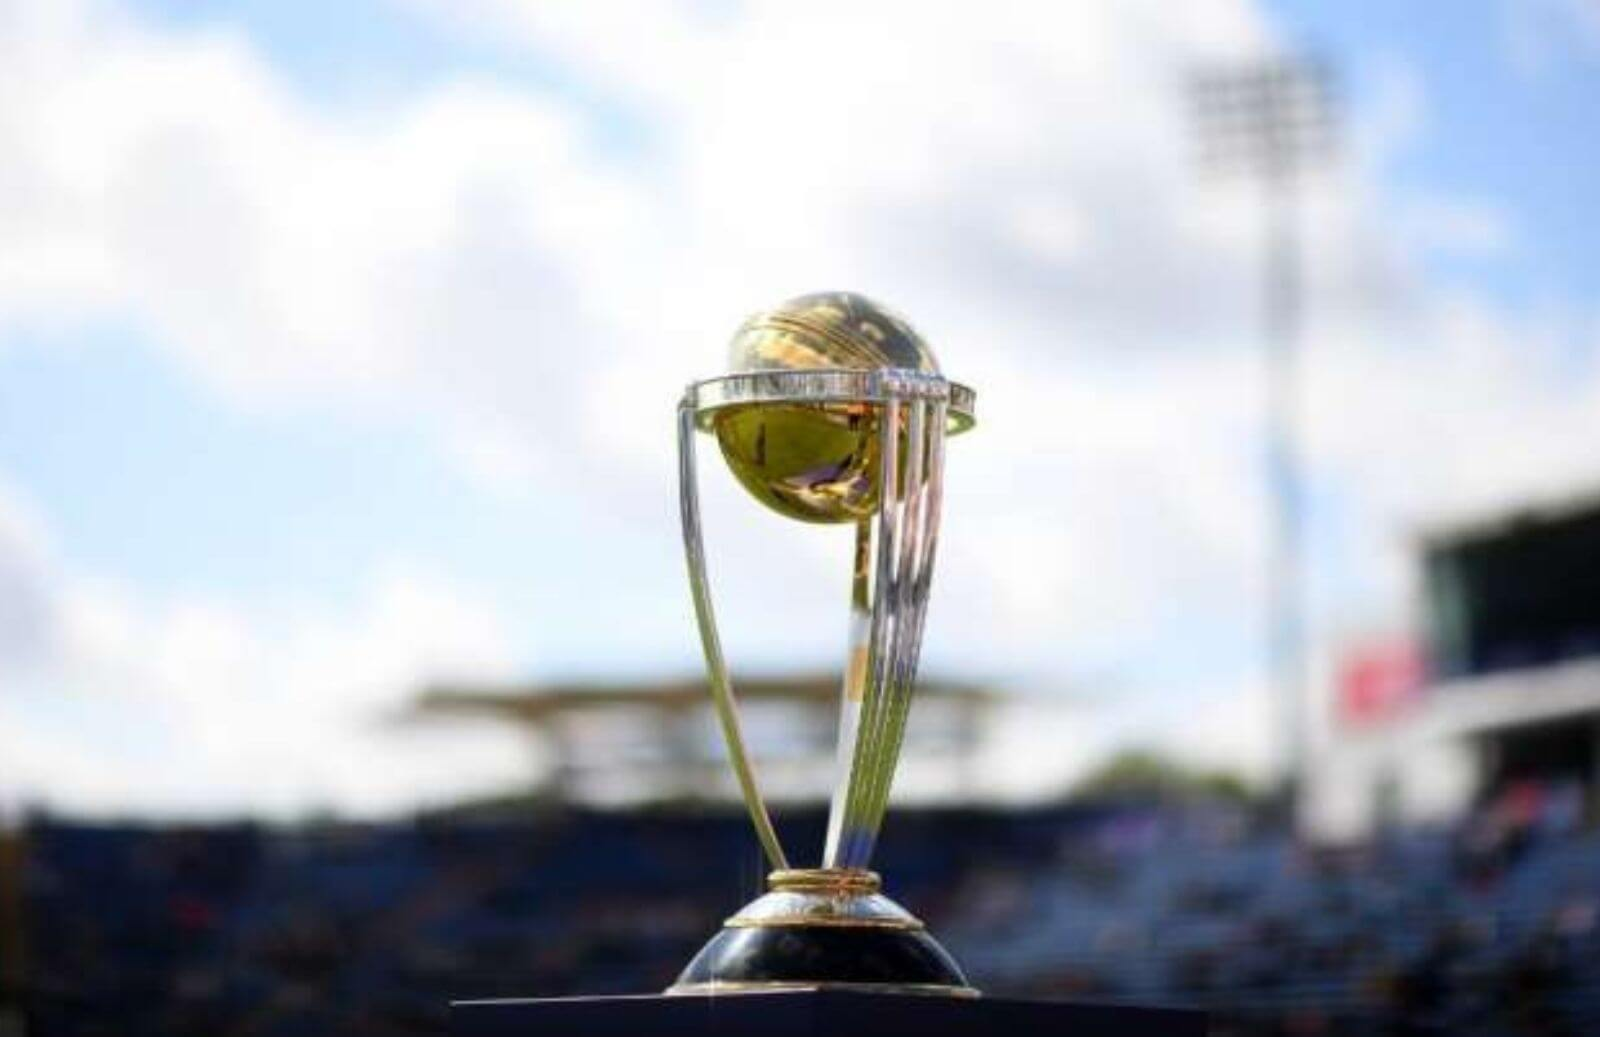 ICC Announced Schedule For 2023 ODI World Cup Qualifiers, Zimbabwe To Host The Event, Reschedule 96 ODIs